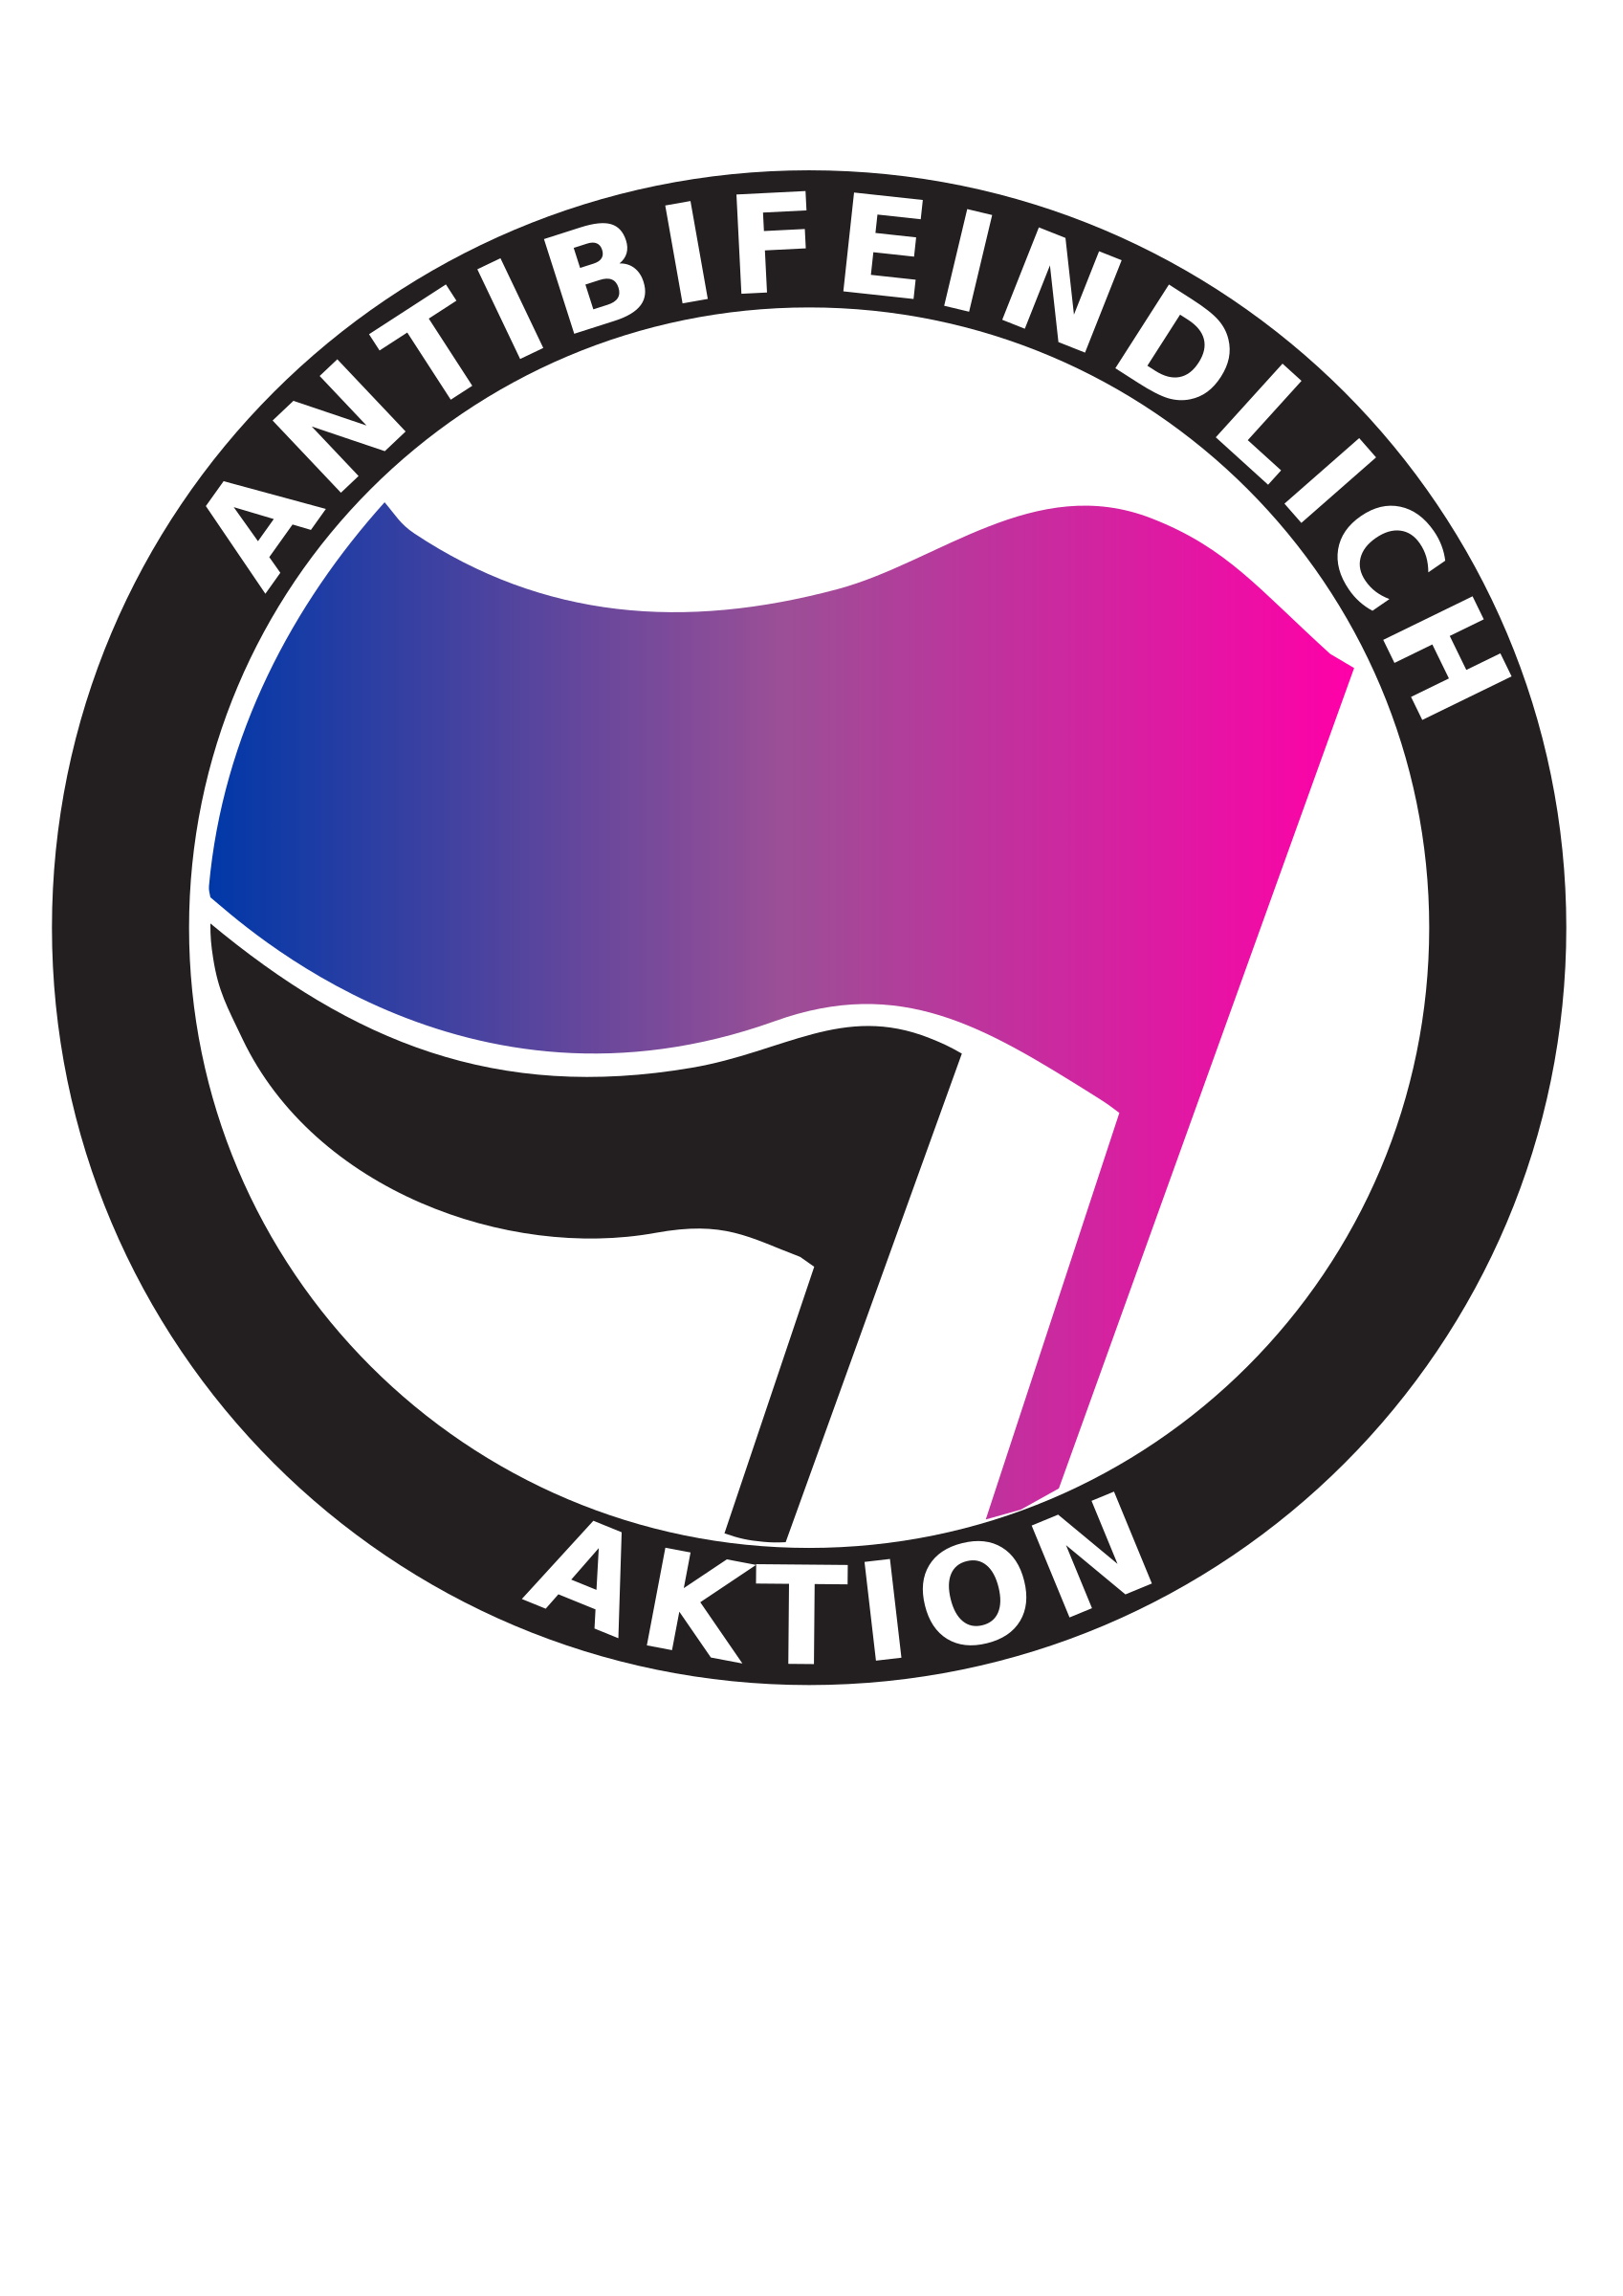 Antibifeindliche Aktion by elsafreytag